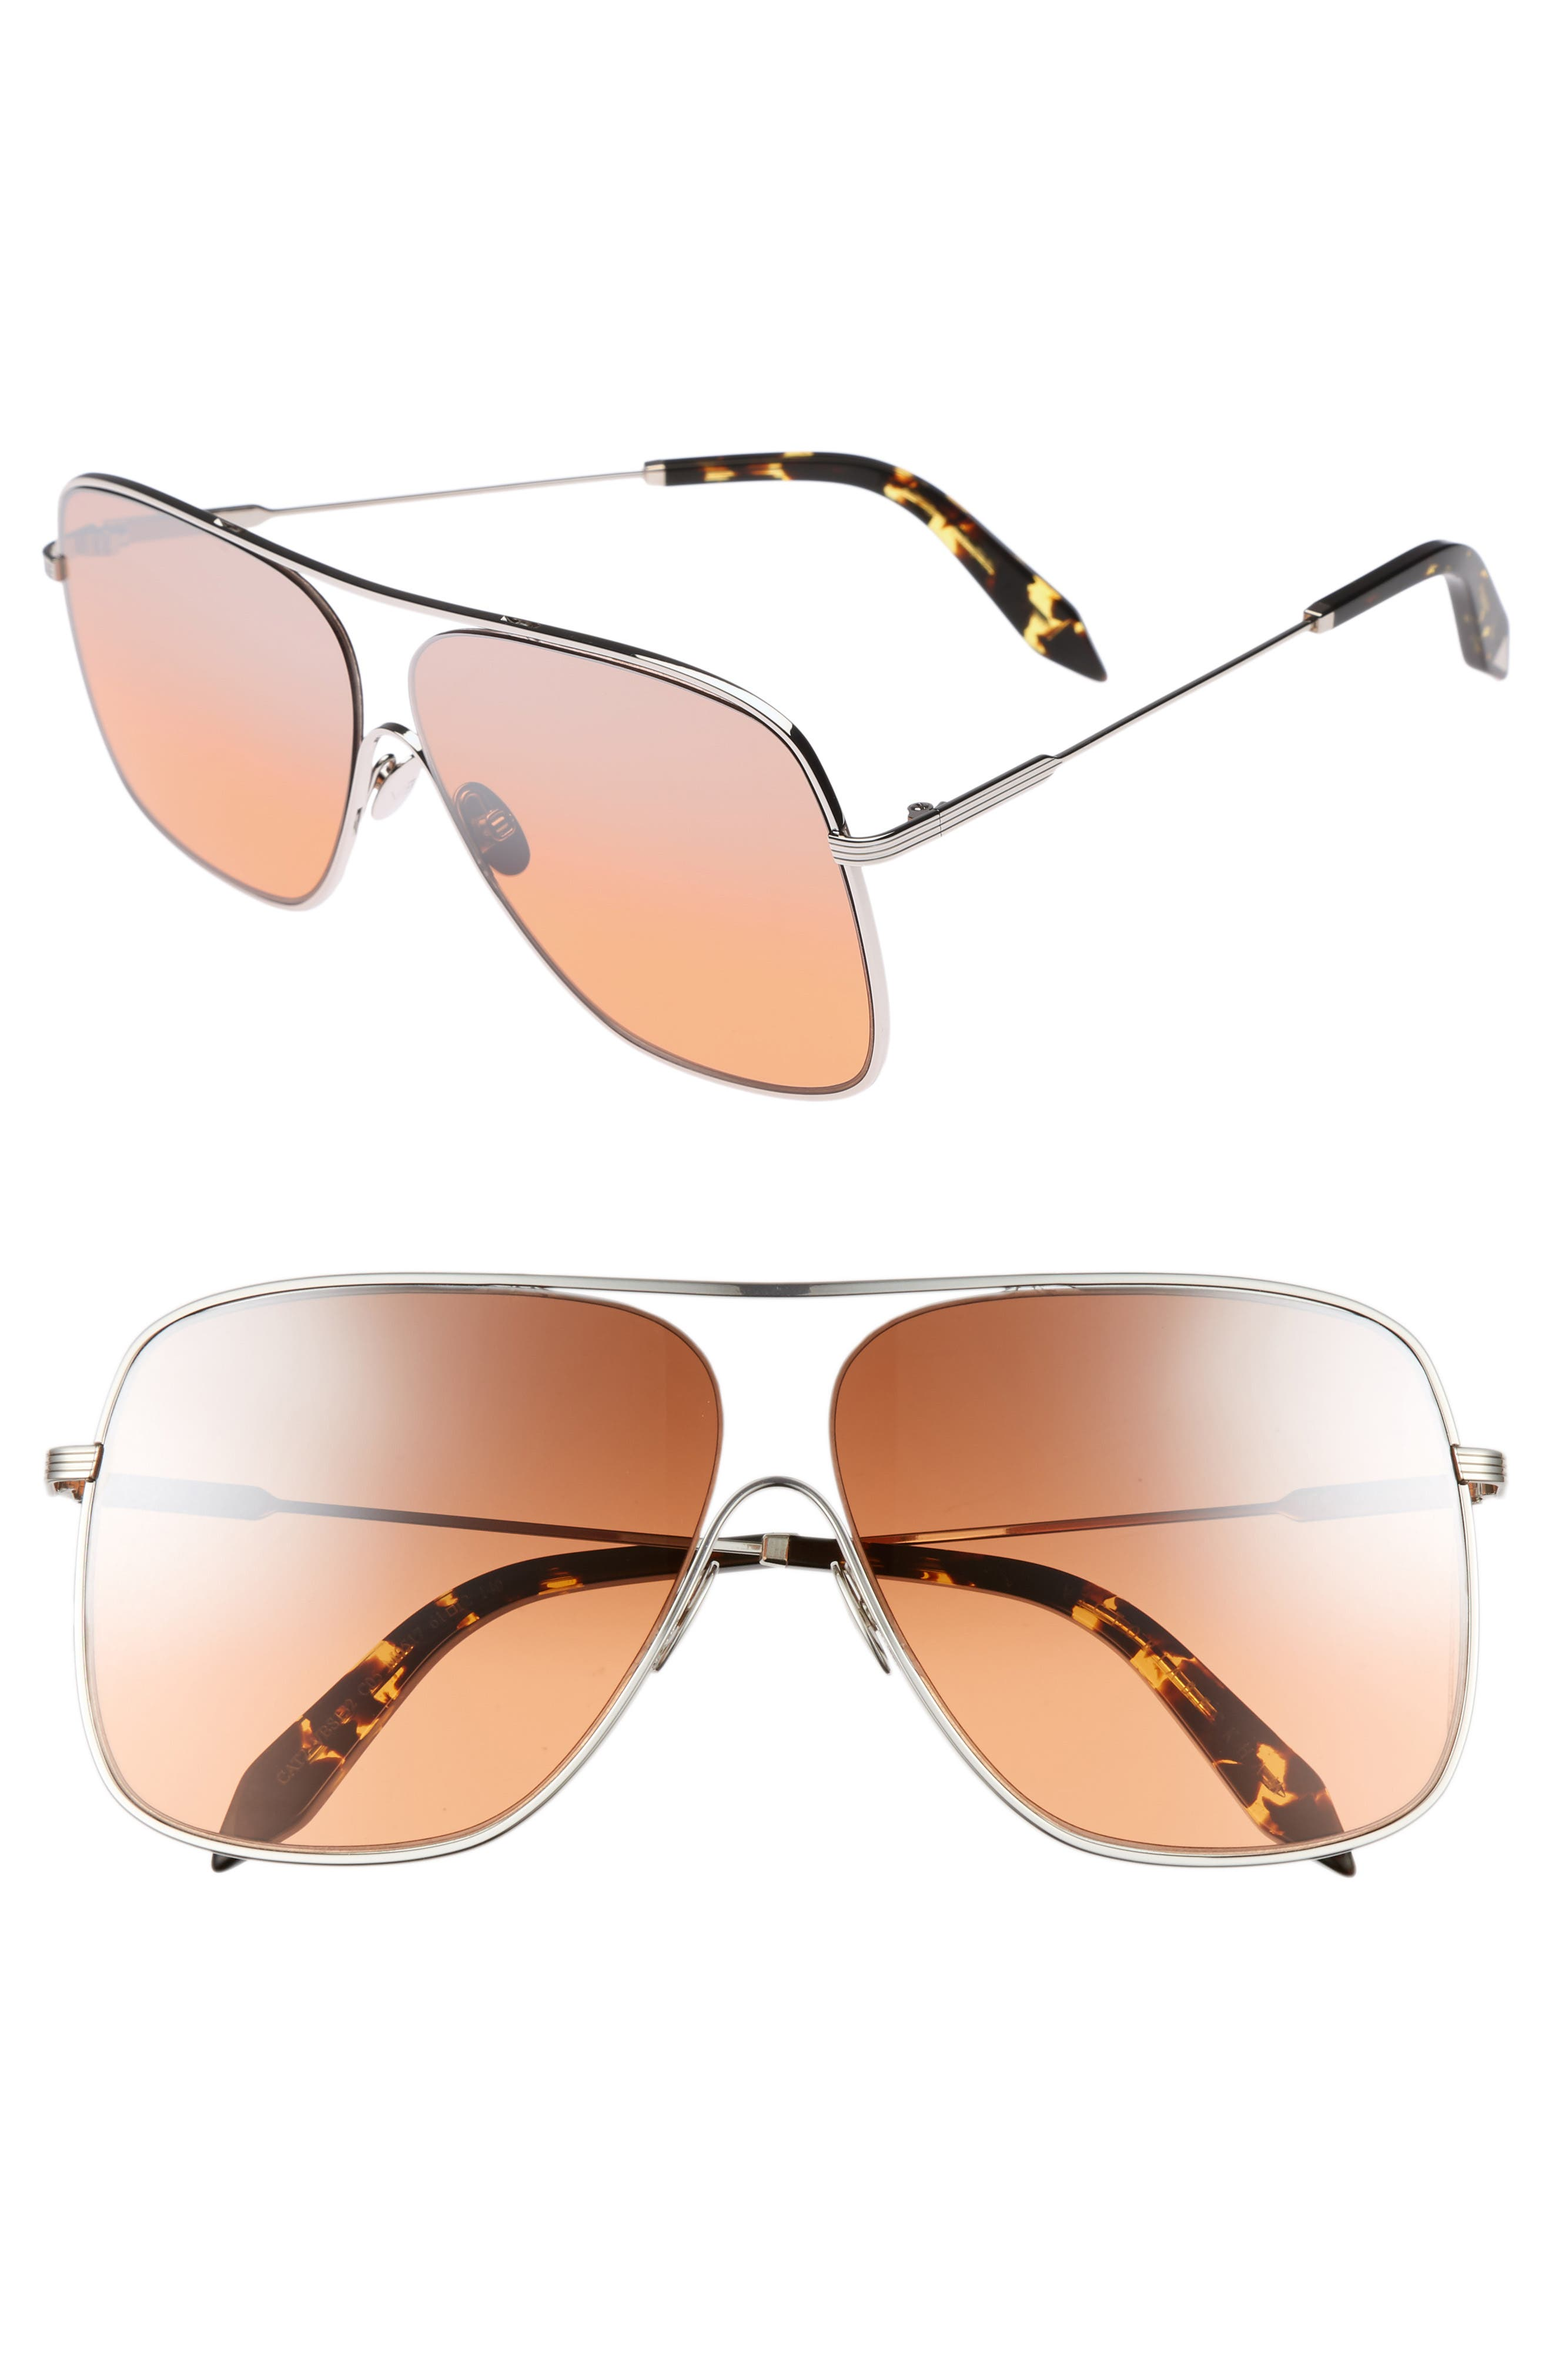 Main Image - Victoria Beckham Loop 61mm Navigator Sunglasses